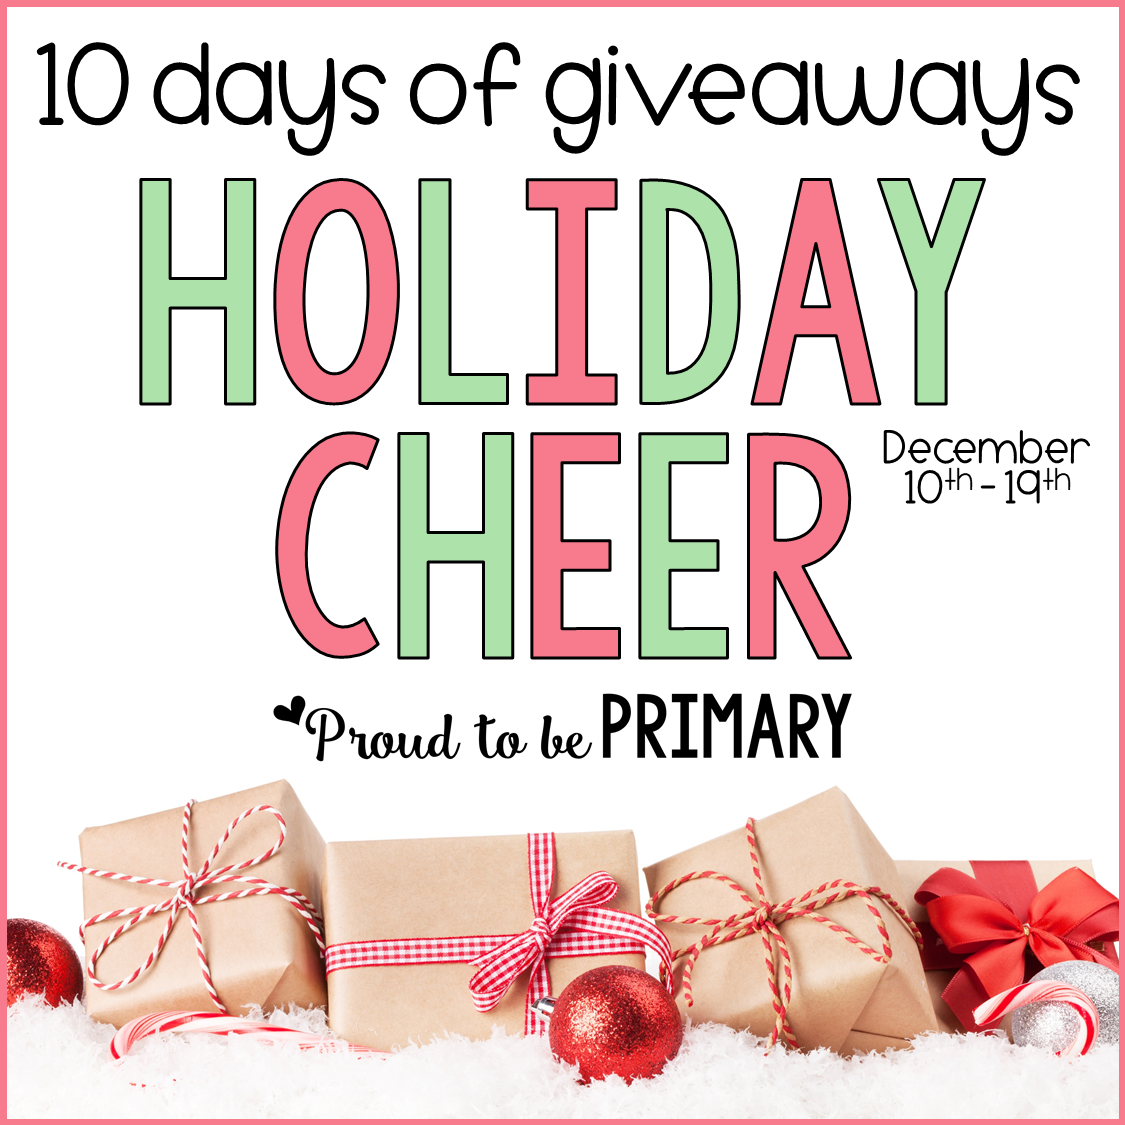 10 days of giveaways holiday cheer event